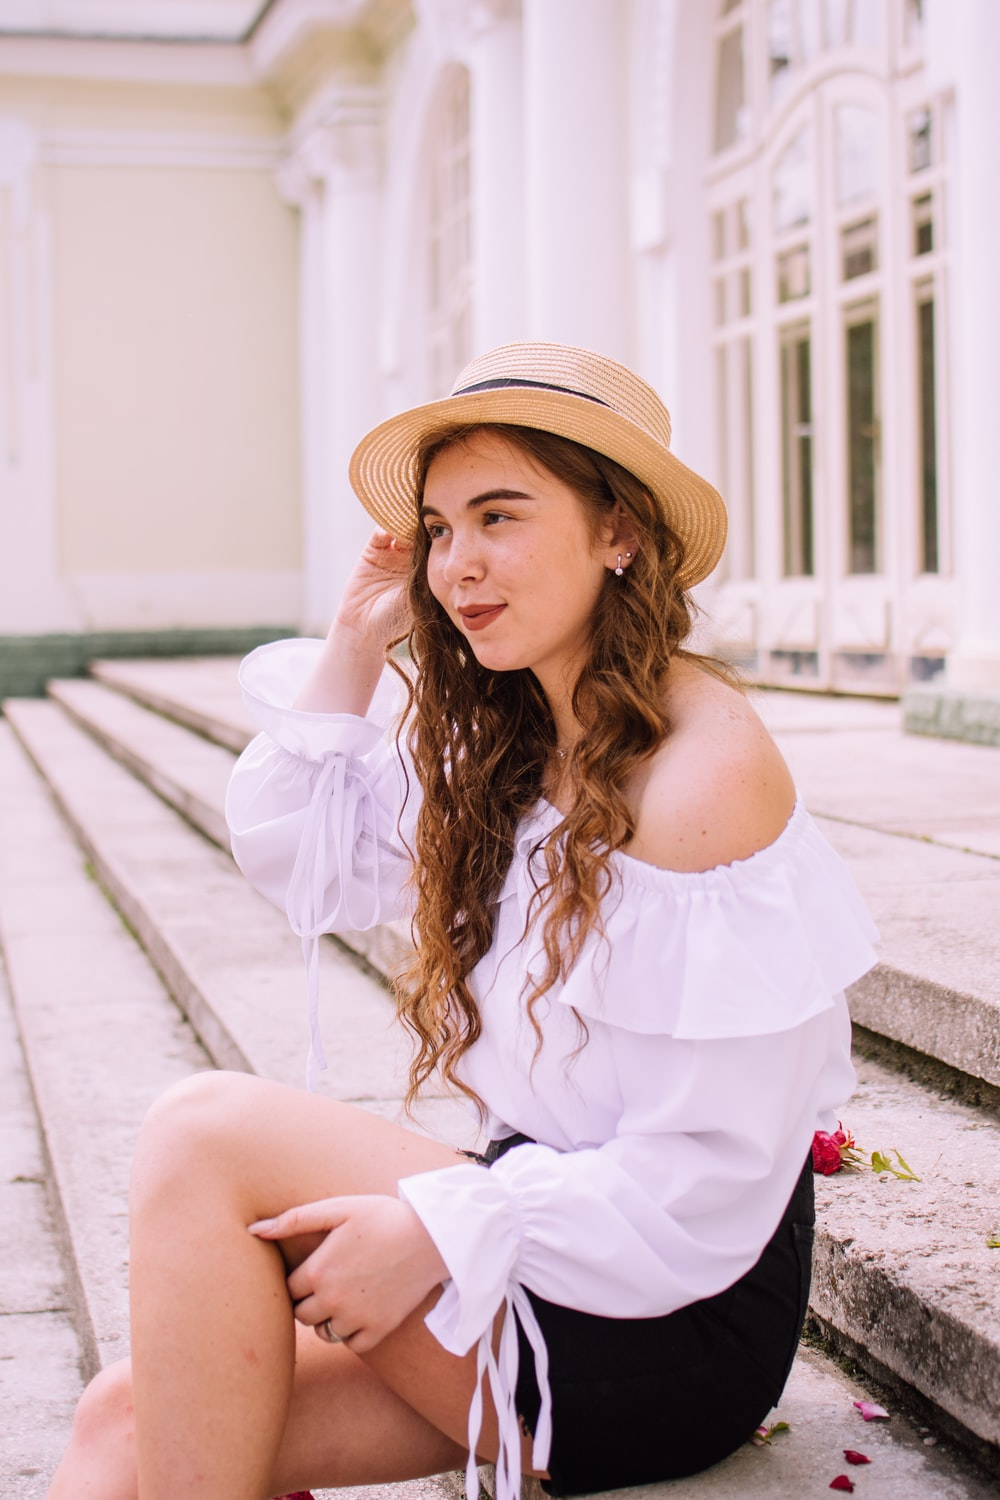 woman in white off shoulder dress wearing brown hat sitting on concrete floor during daytime